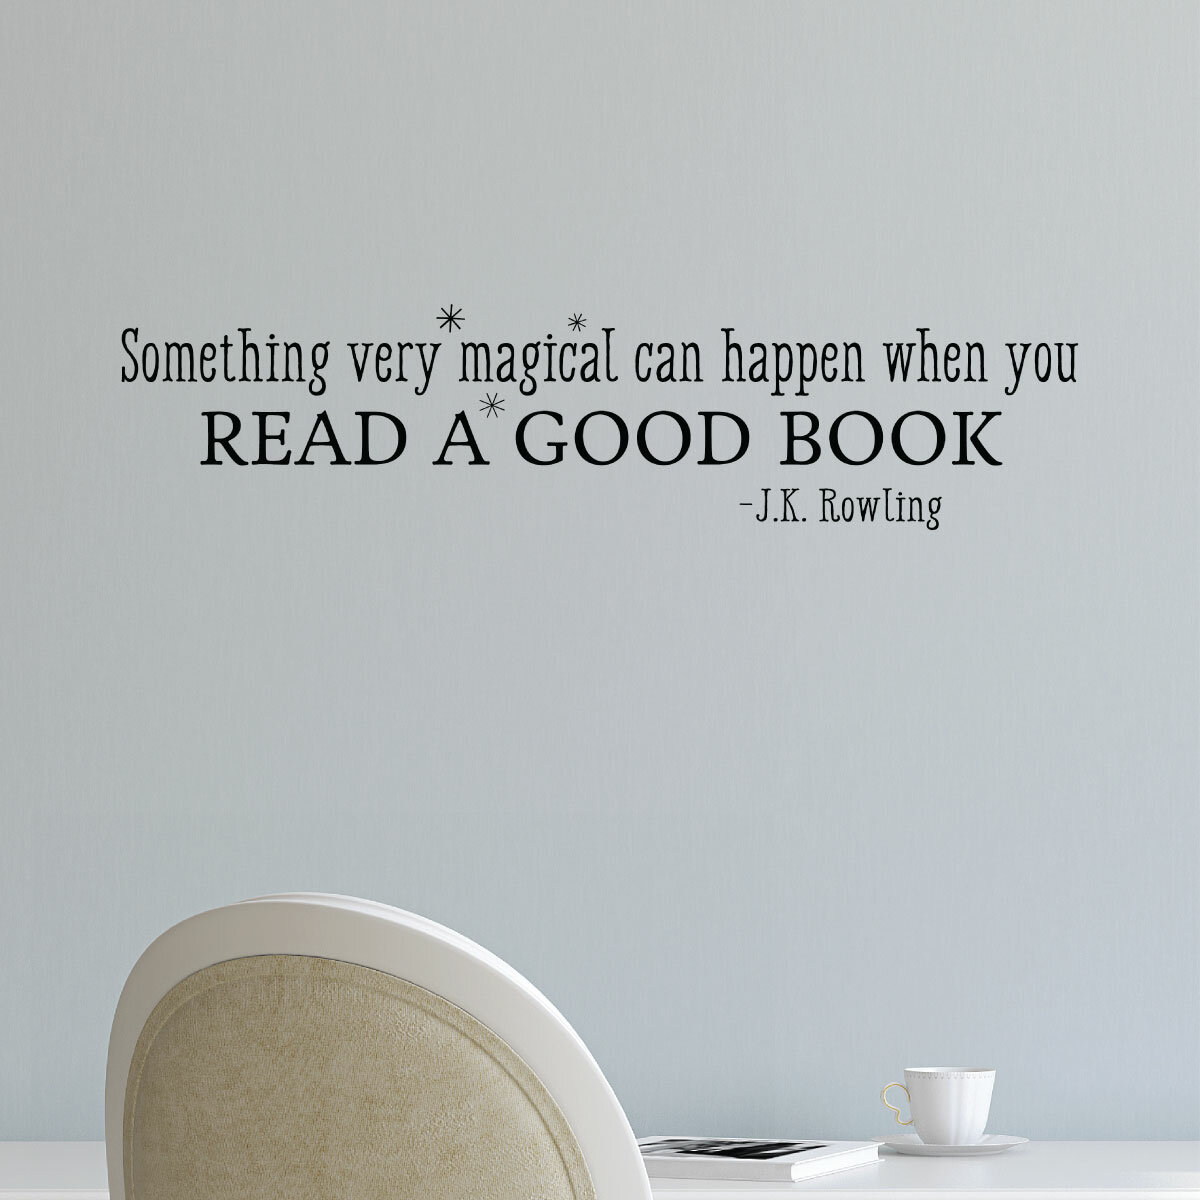 Good Book Quotes Belvedere Designs LLC Read A Good Book Wall Quotes™ Decal | Wayfair Good Book Quotes